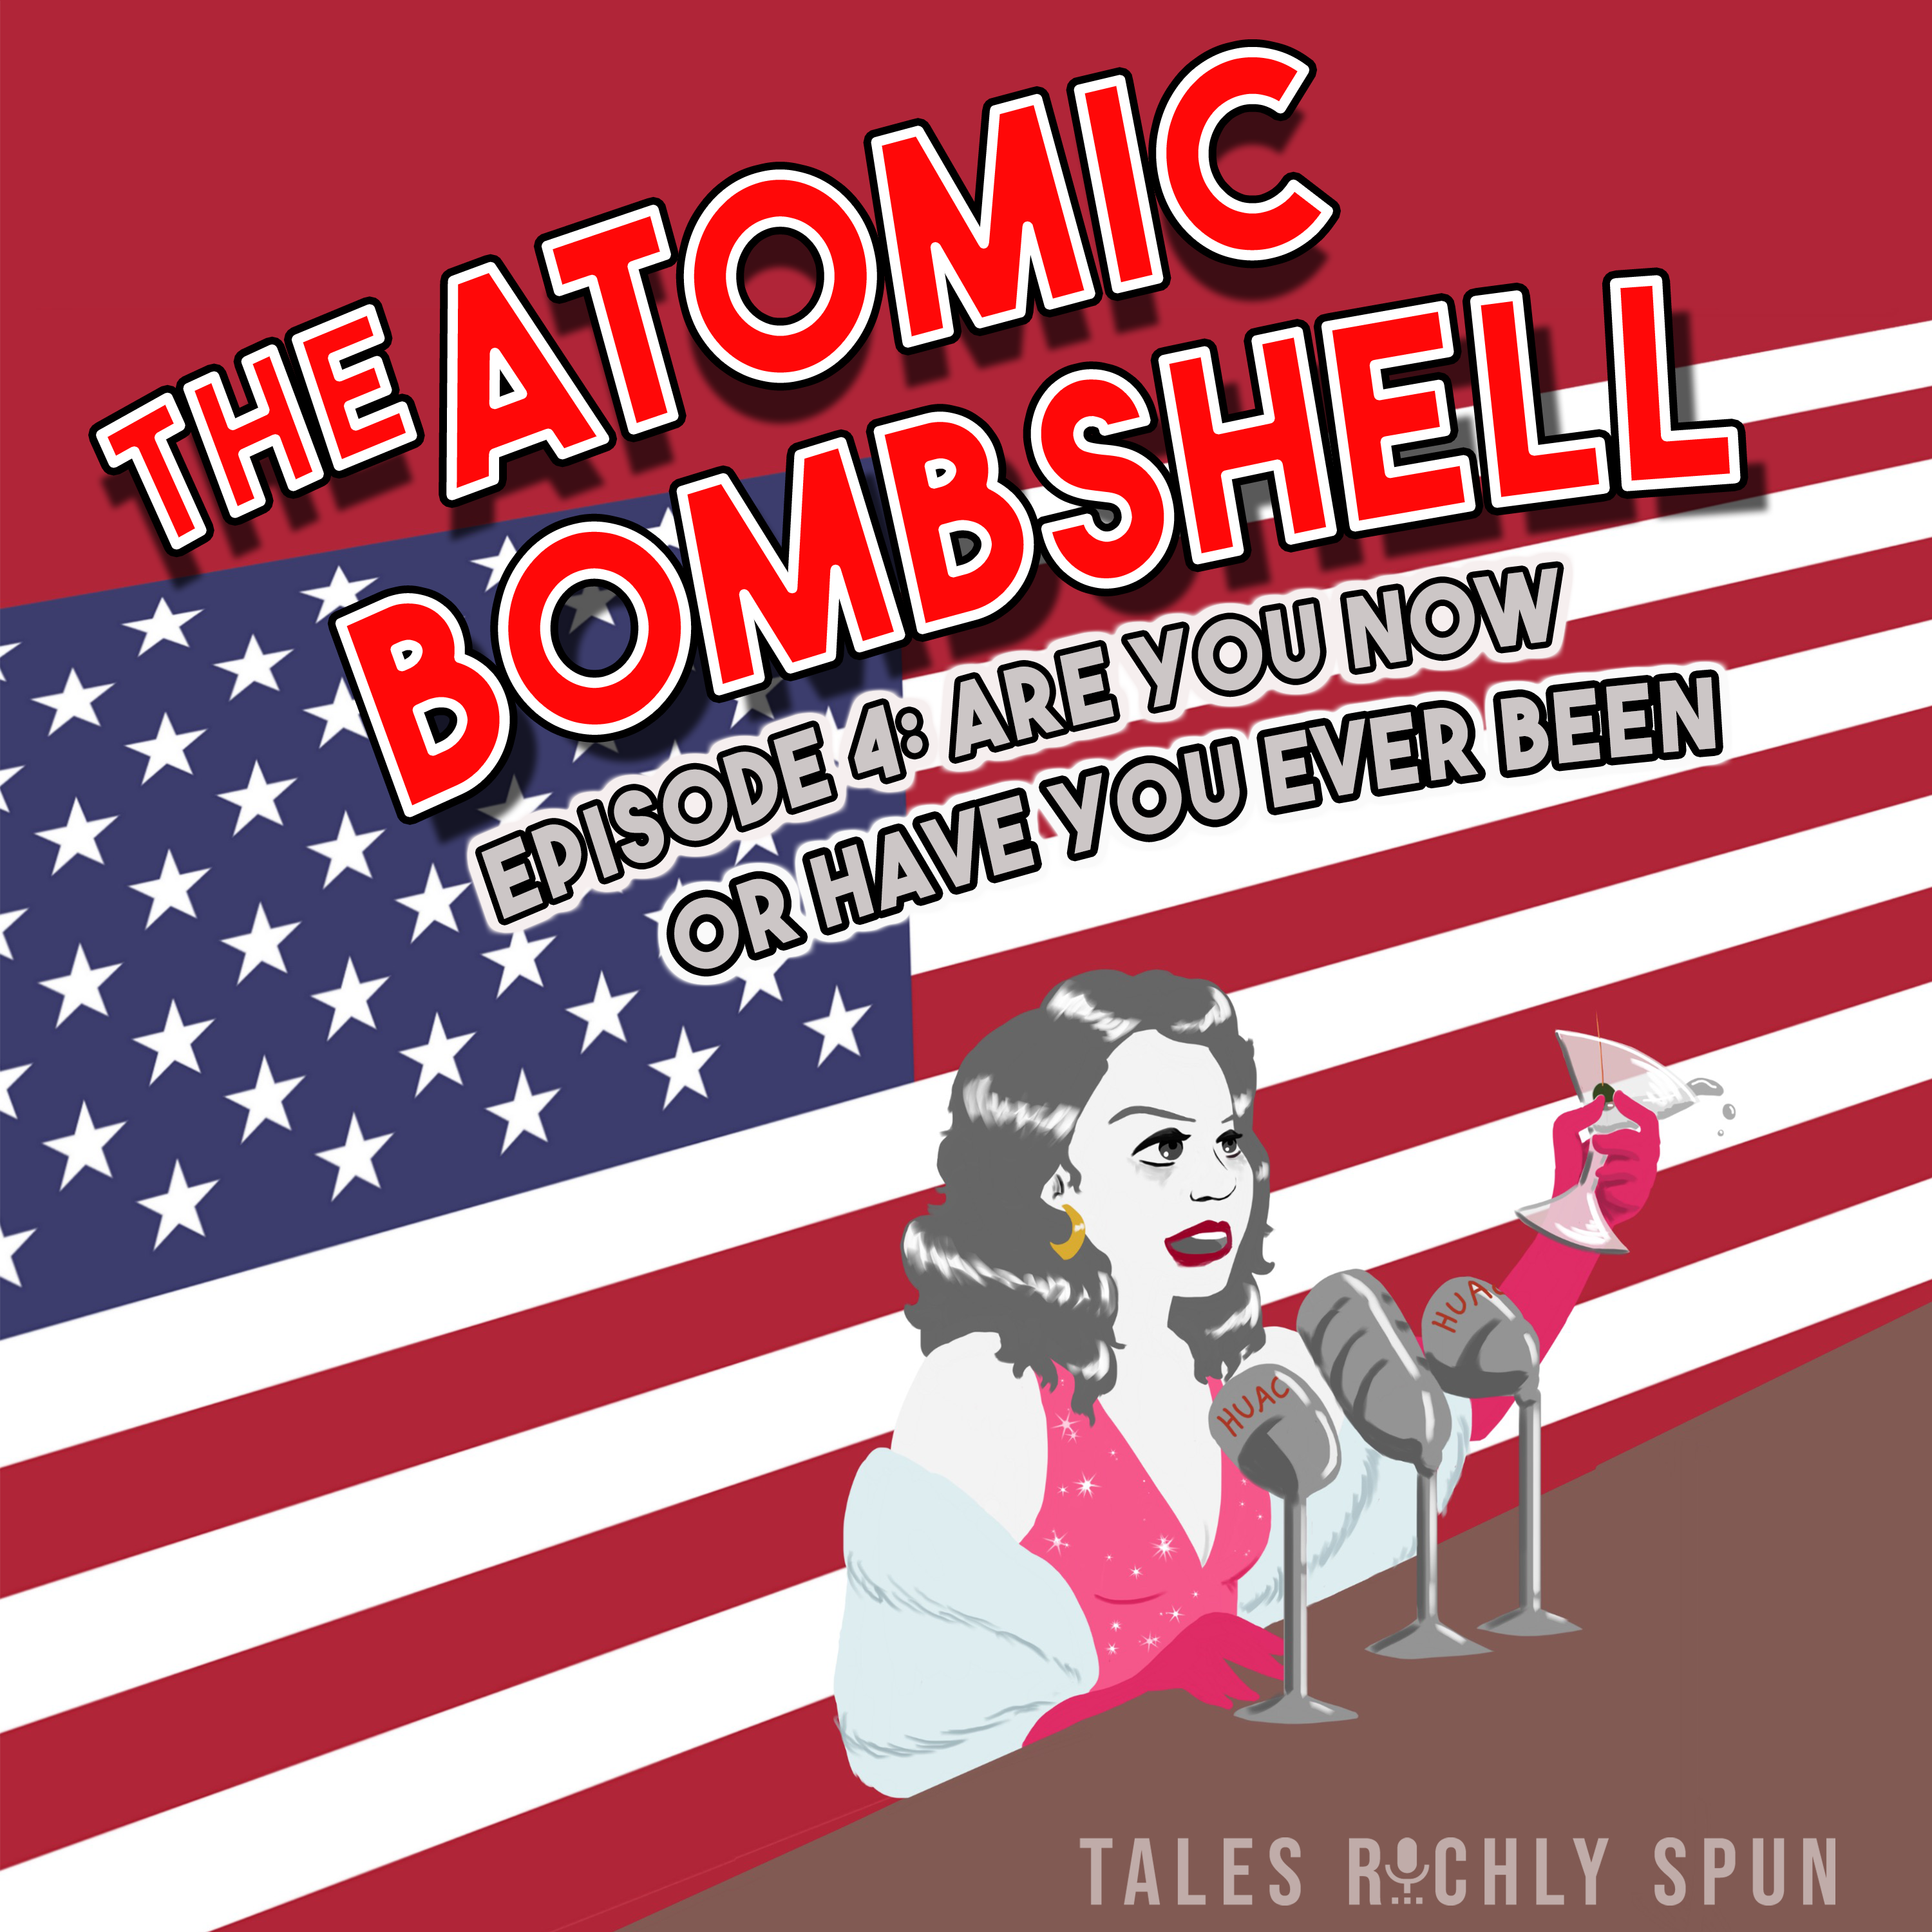 Atomic Bombshell, Episode 4: Are You Now Or Have You Ever Been